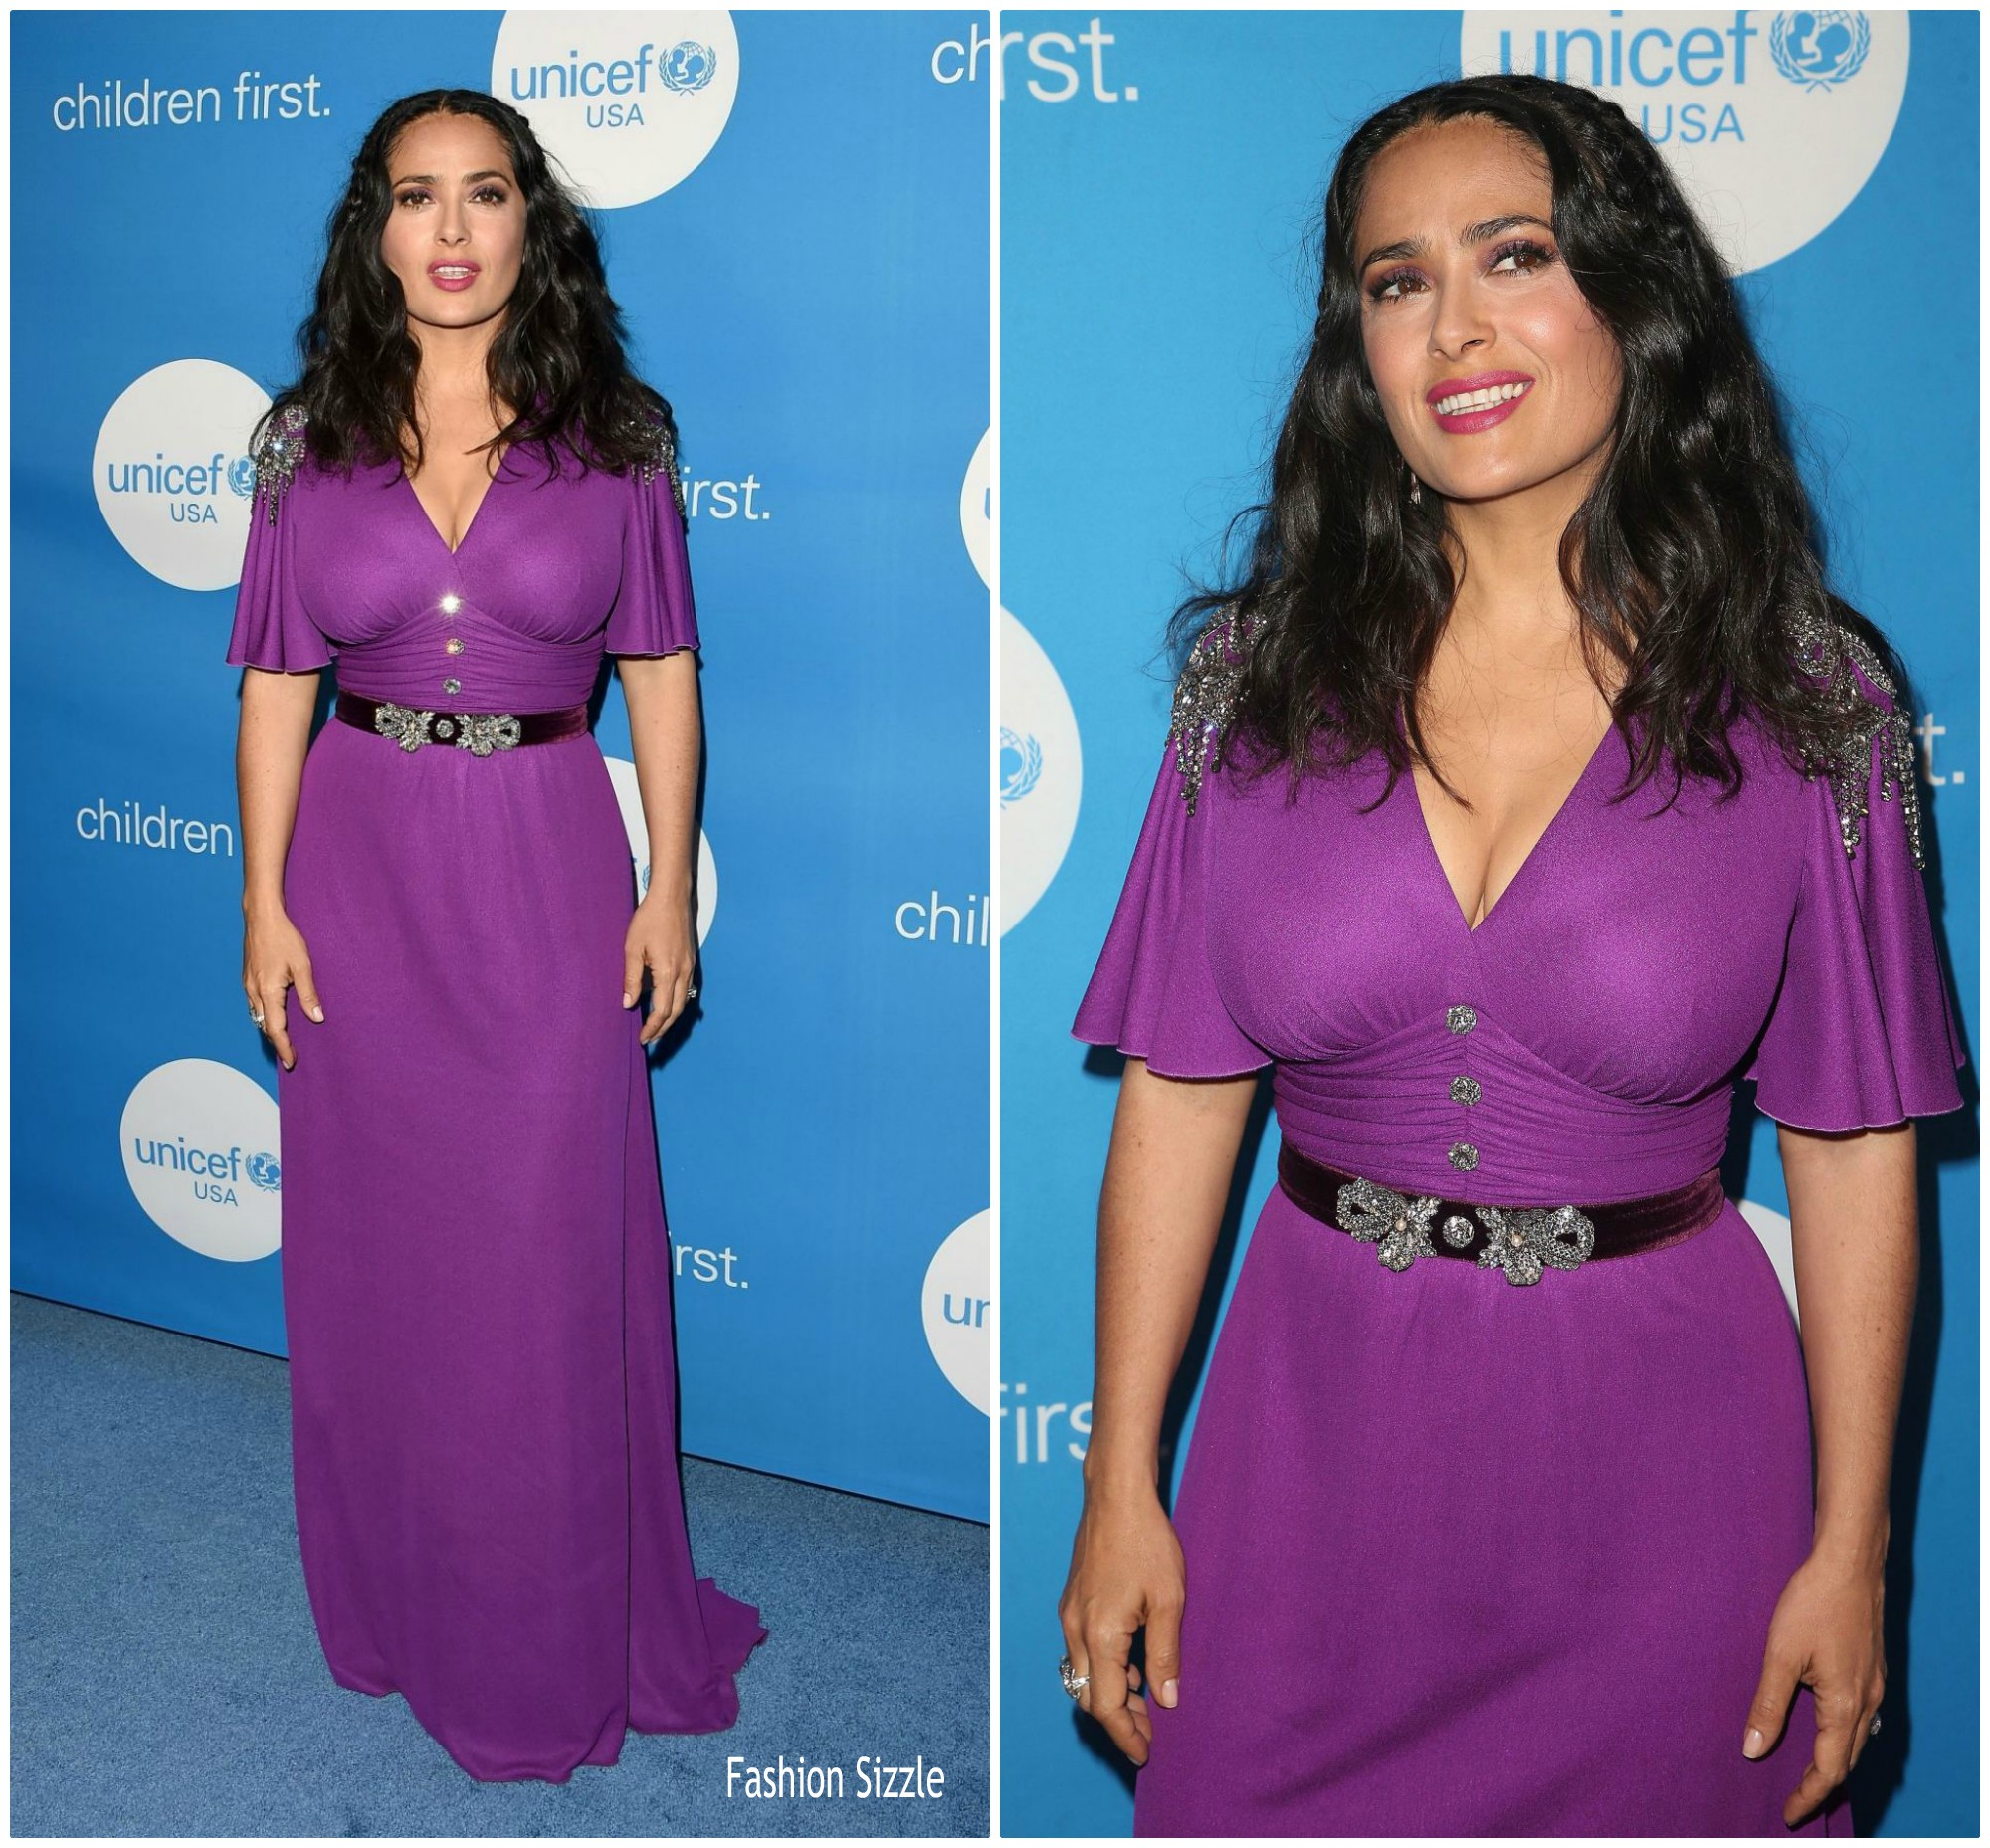 salma-hayek-in-gucci-7th-biennial-unicef-ball-in-beverly-hills